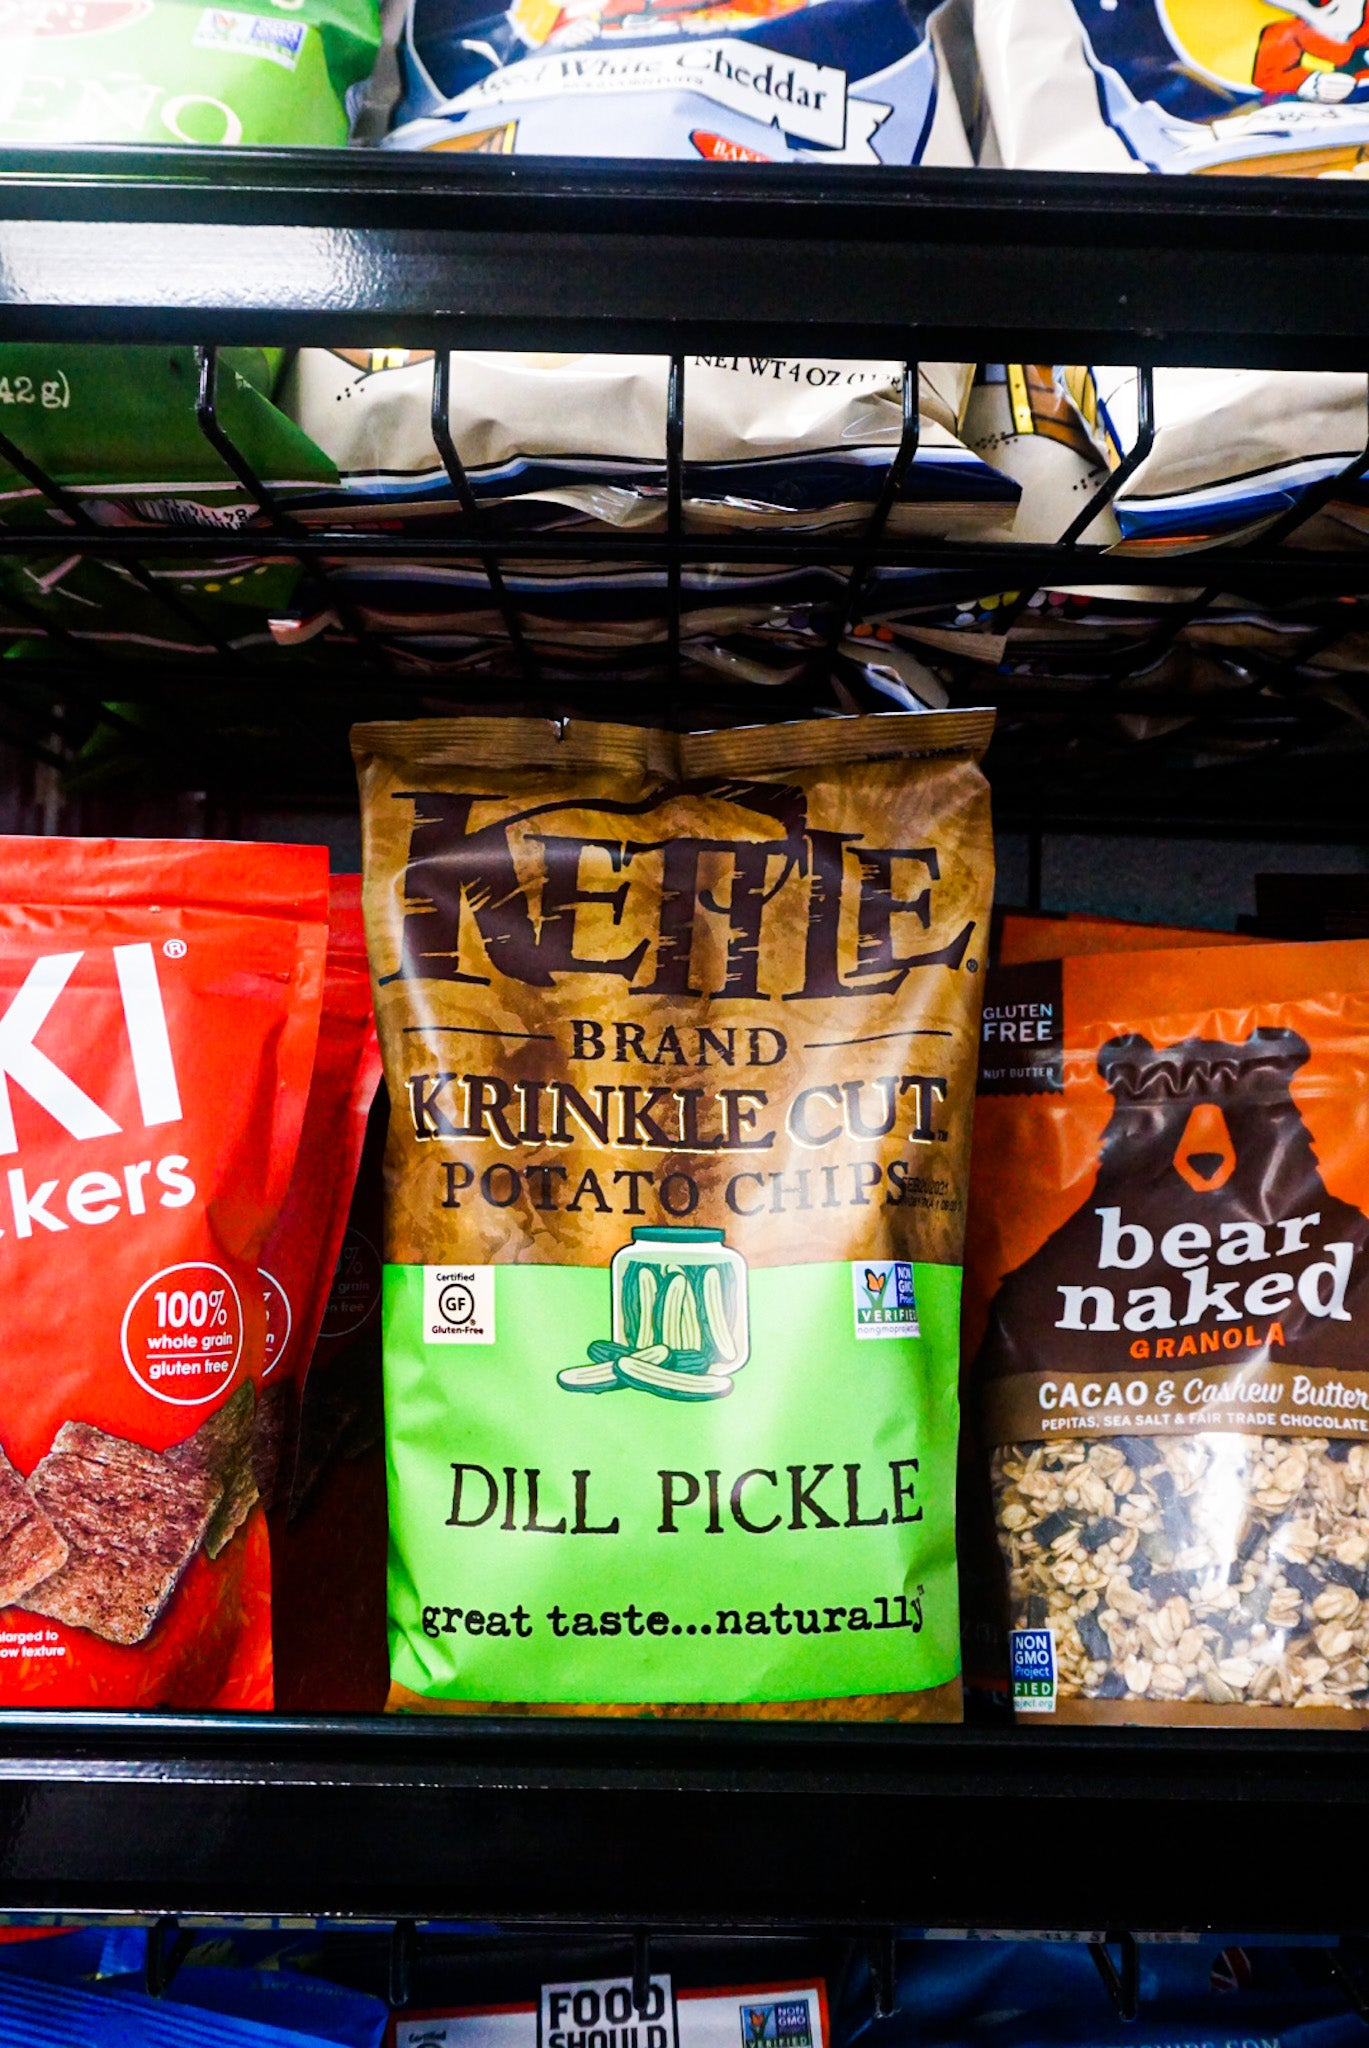 Kettle Dill Pickle - Delivery